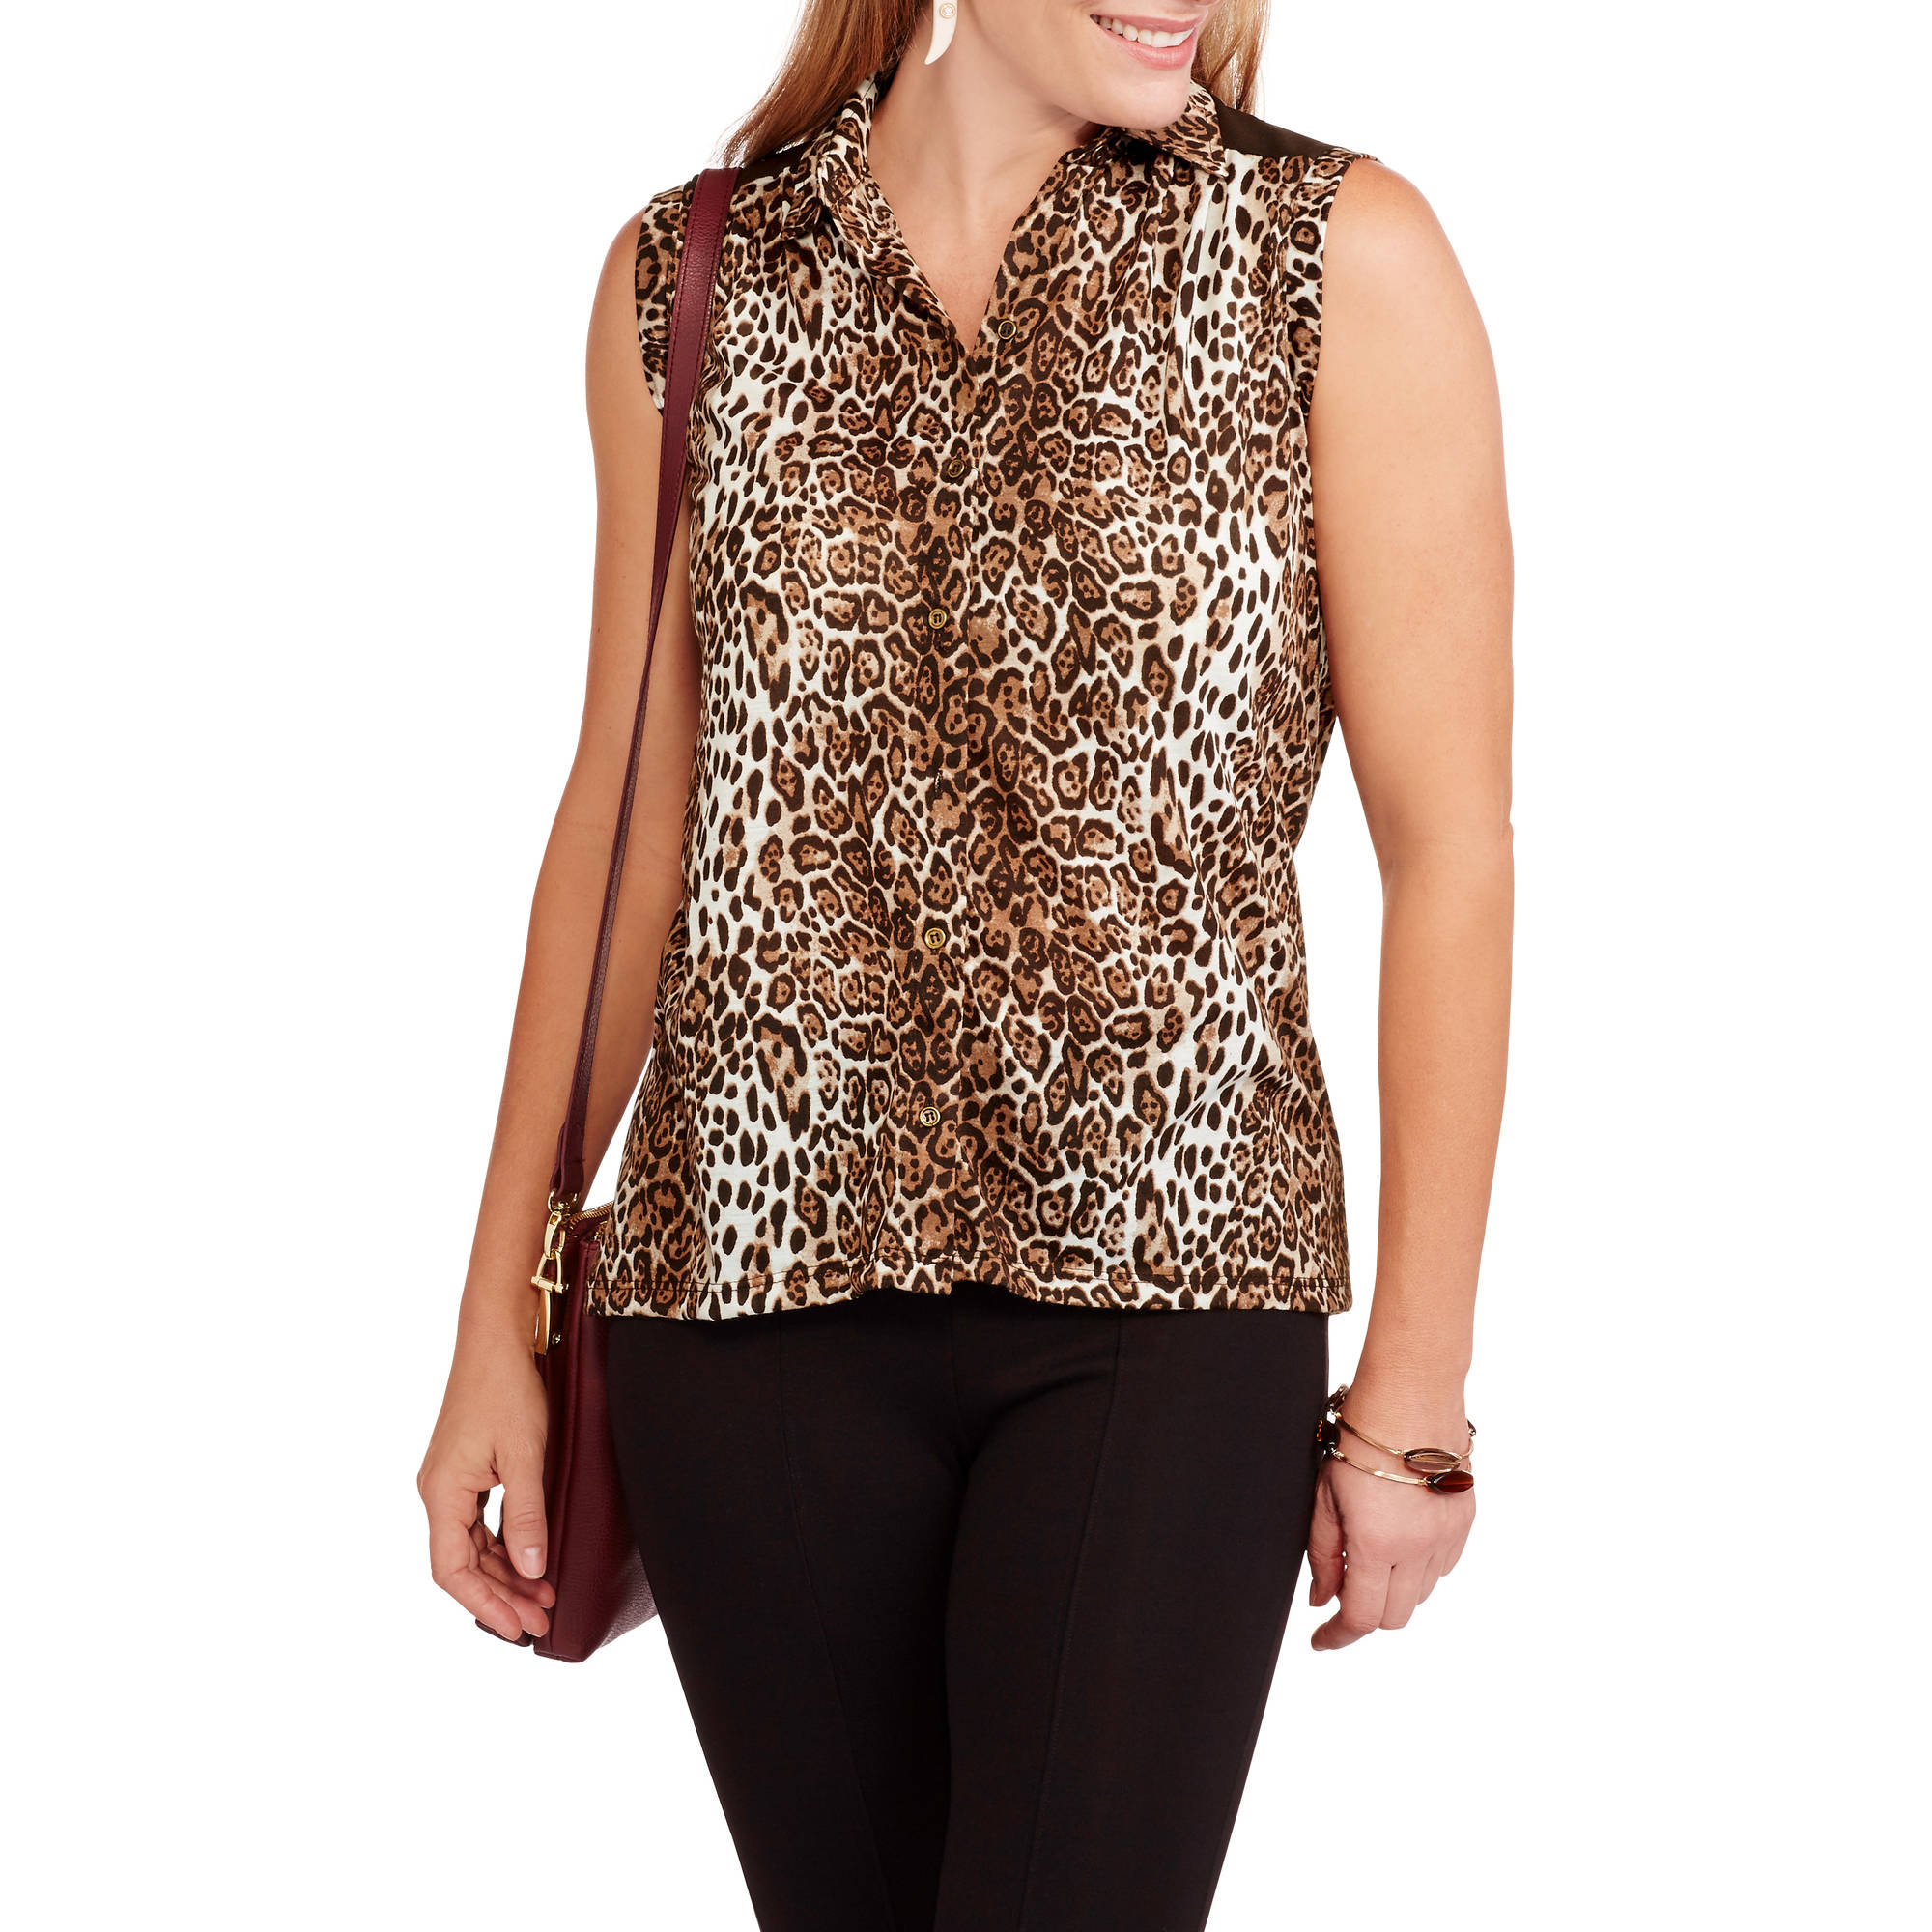 French Laundry Women's Soft Knit Leopard Sleeveless Button-Front Top